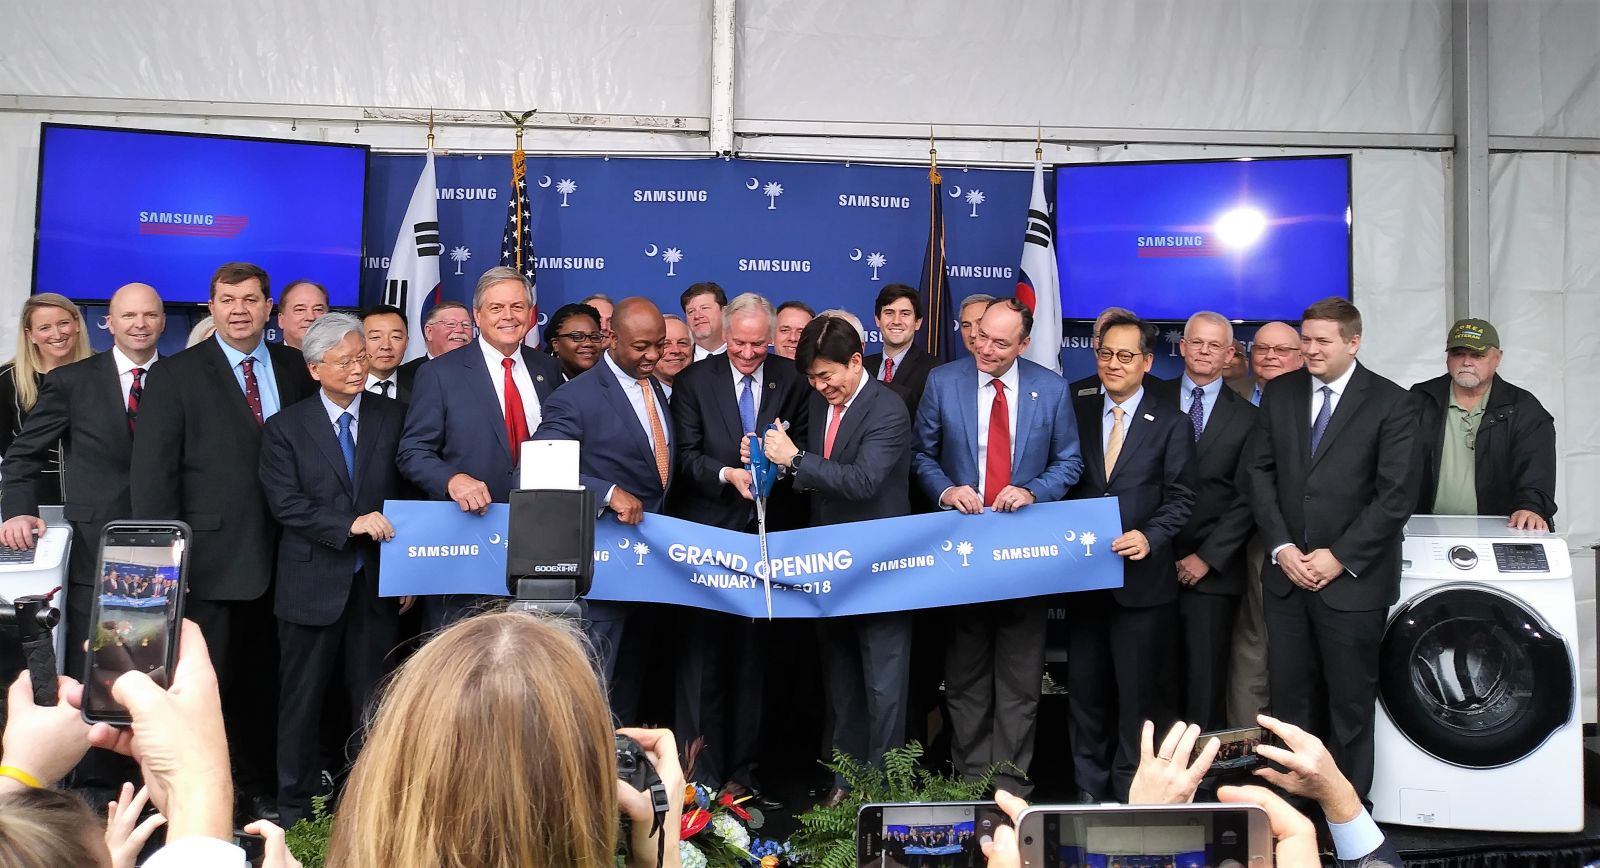 State leaders including Gov. Henry McMaster (center) and U.S. Sen. Tim Scott (left of McMaster) celebrated the grand opening of Samsung's Newberry manufacturing plant on Friday. (Photo/Travis Boland)